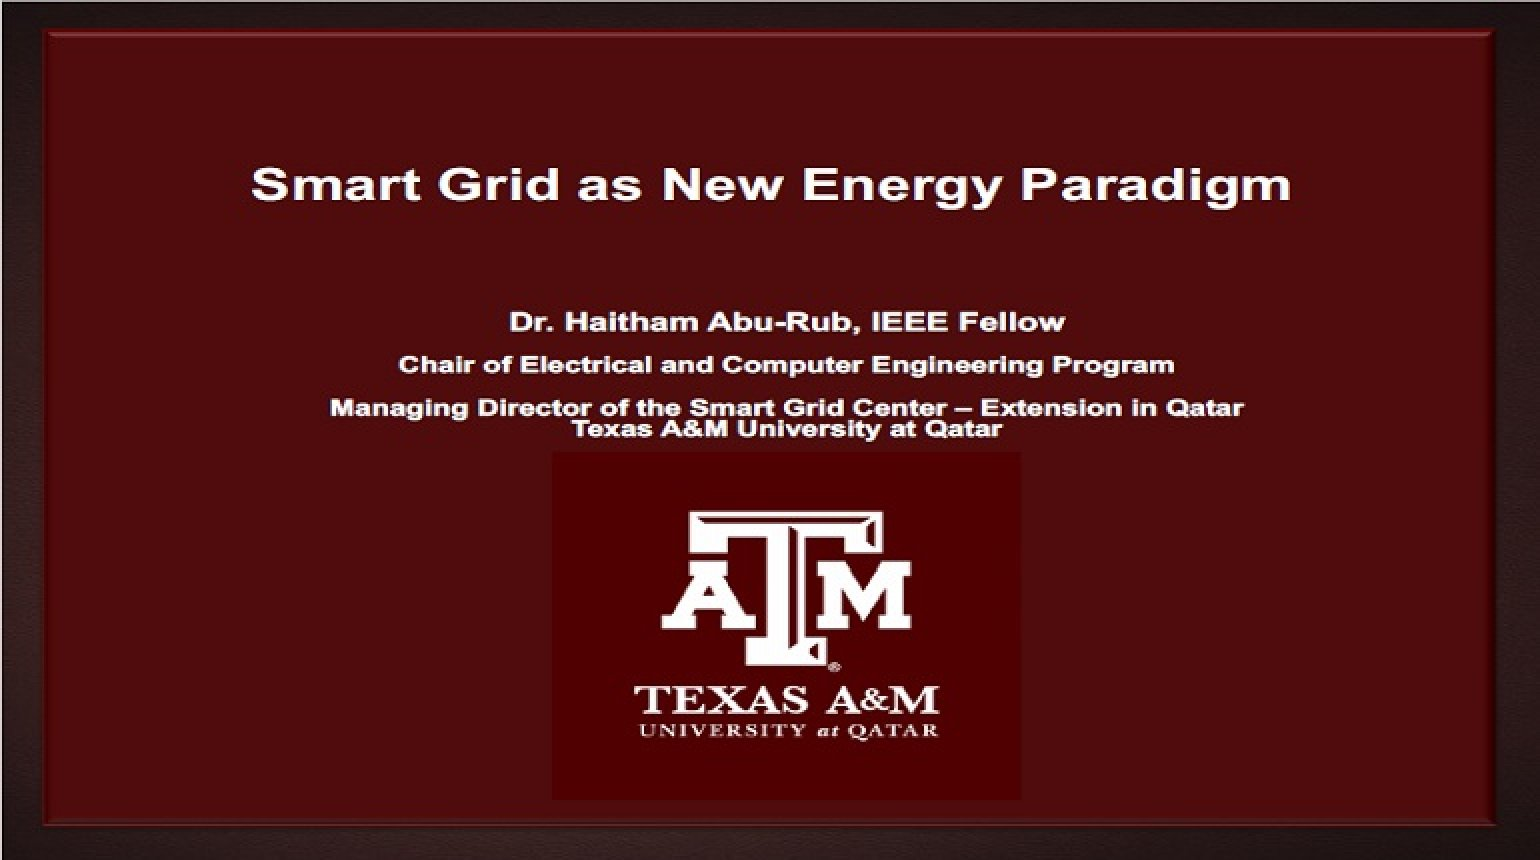 Smart Grid as New Energy Paradigm Video